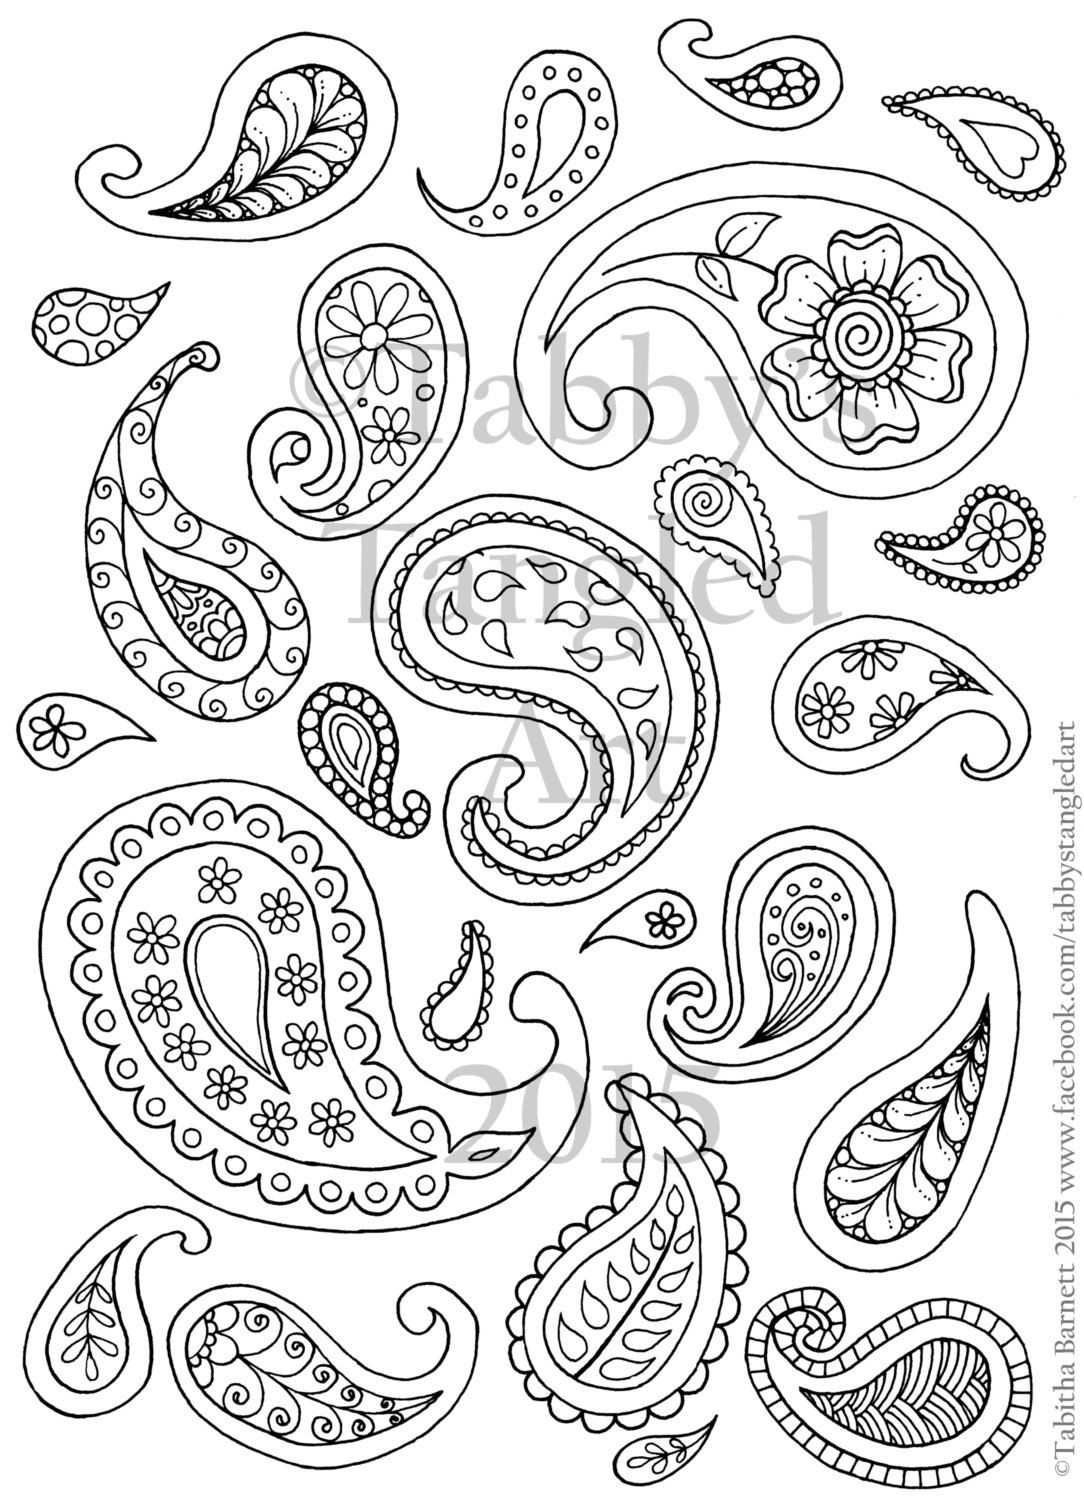 Pin On Coloring Book Page Adults Malarbocker For Vuxna